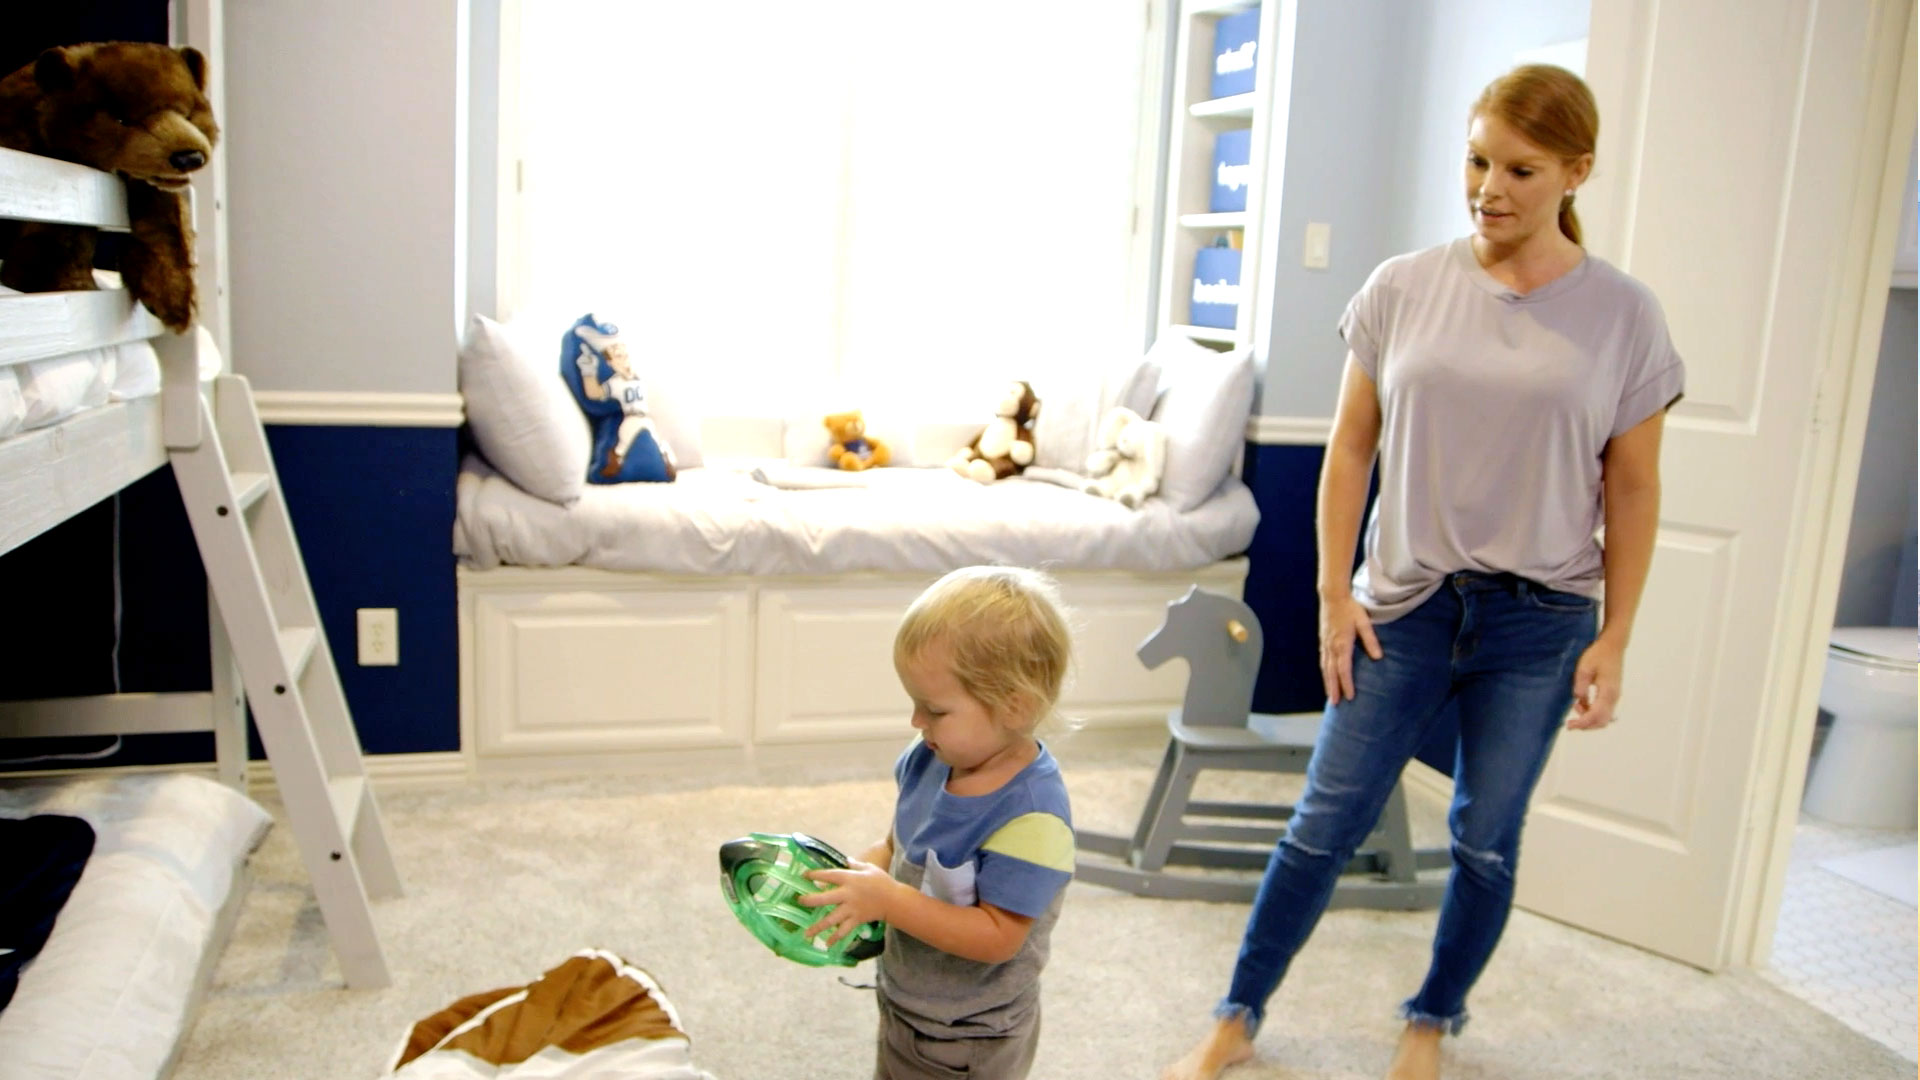 Brandi Redmond's Son Has a Brand-New Room!